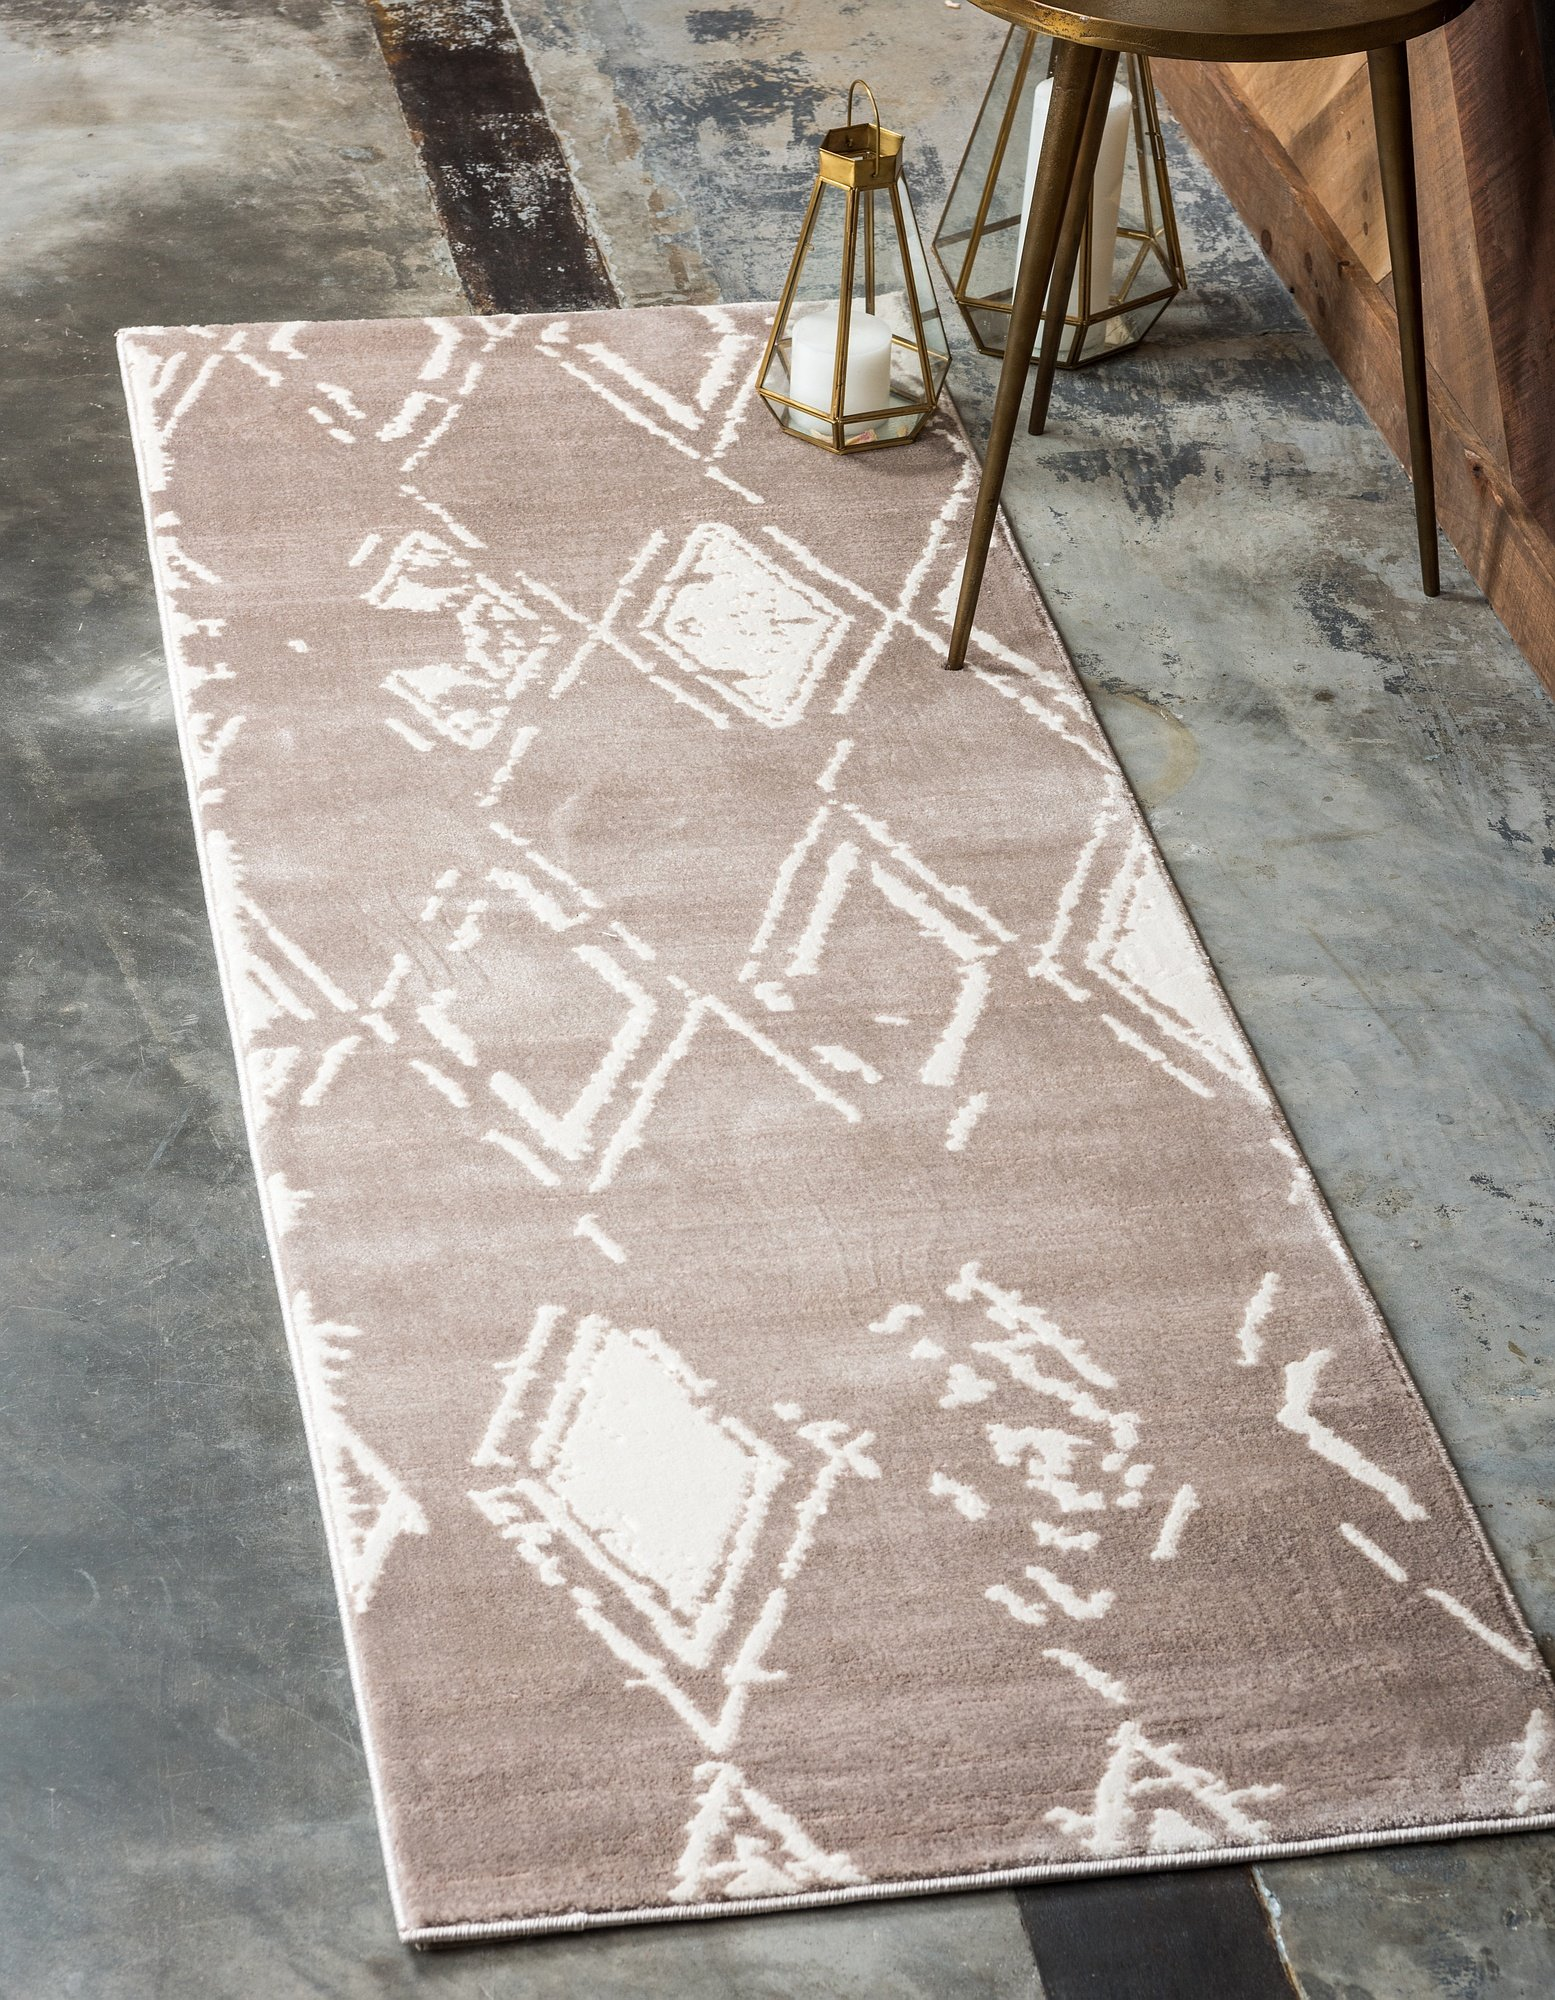 Modern Country Geometric 2 feet by 6 feet (2' x 6') Runner Uptown Collection by Jill Zarin Light Brown Contemporary Area Rug